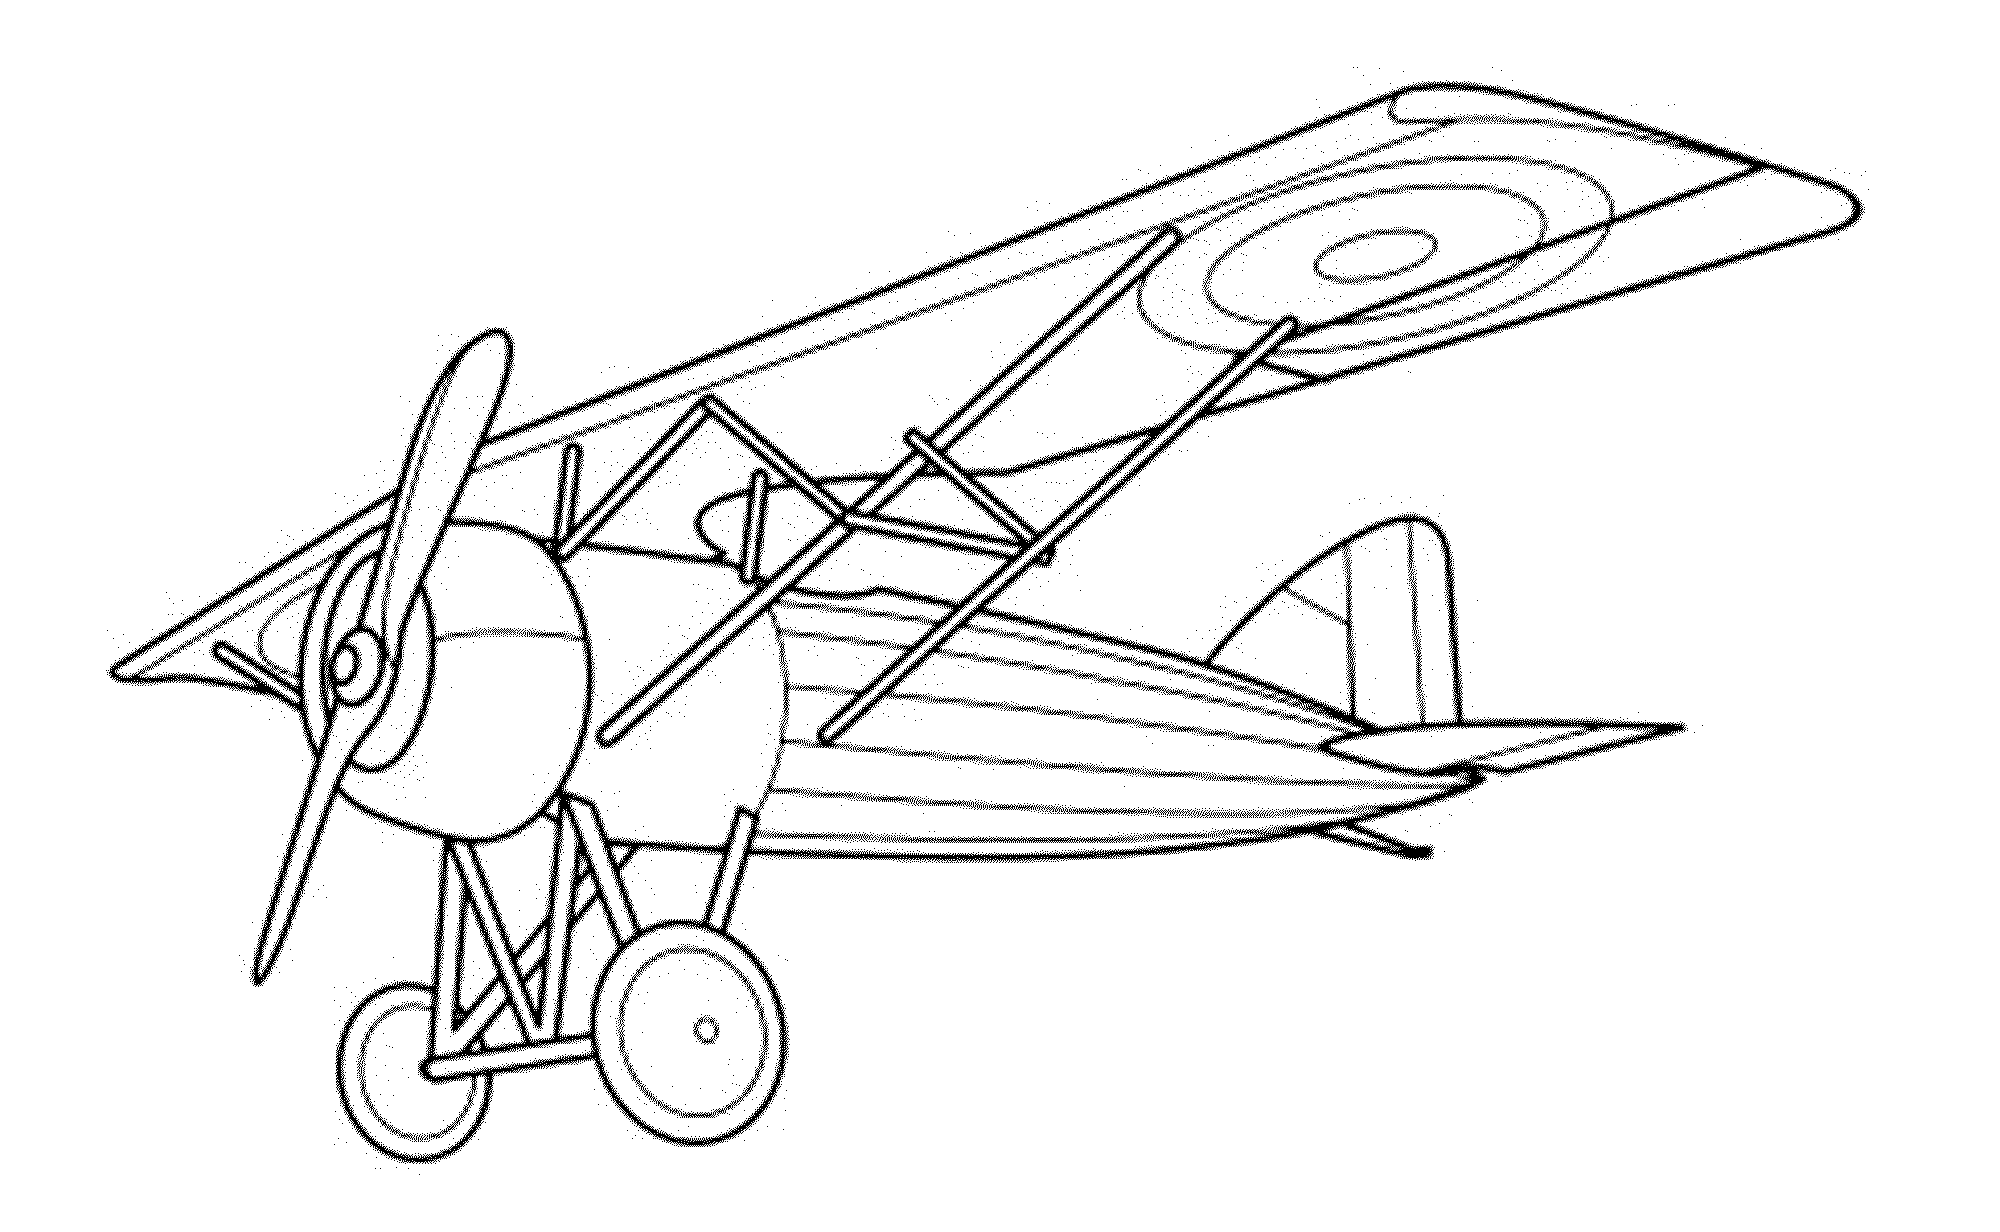 printable airplane coloring pages jet airplane coloring page free printable coloring pages airplane coloring pages printable